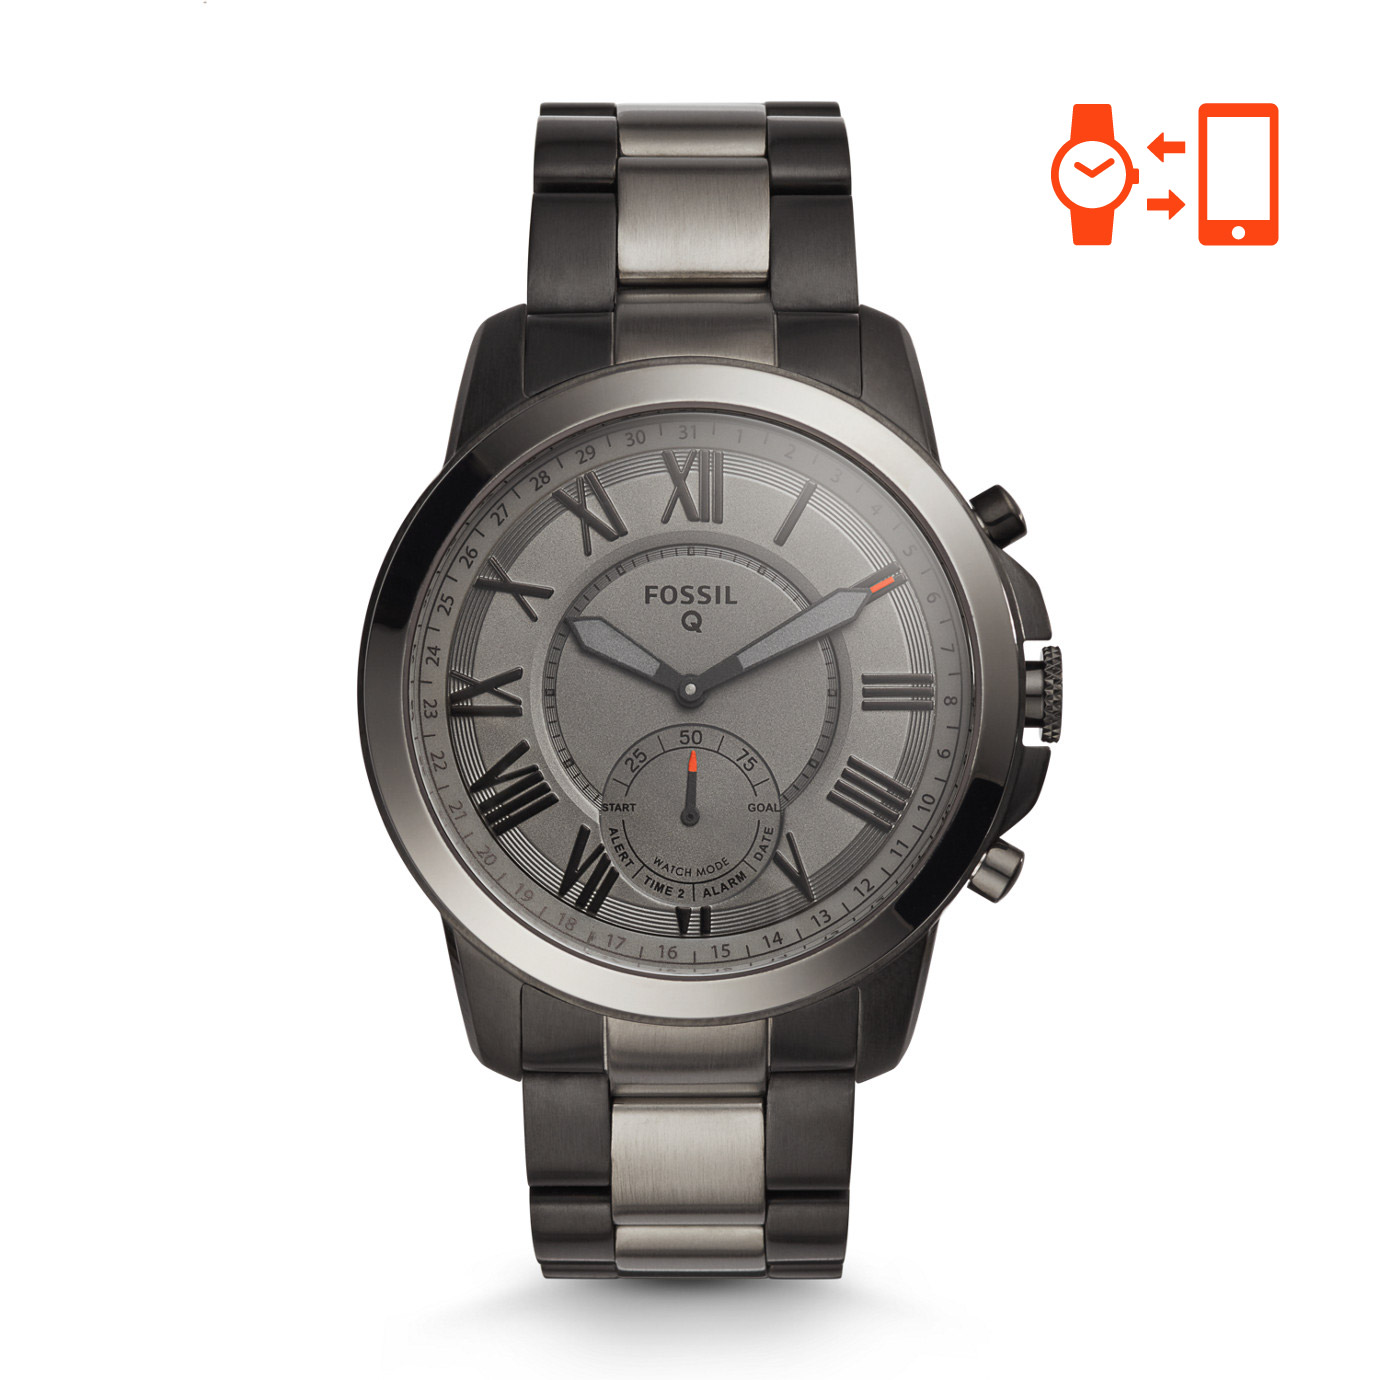 Fossil Q Grant Black and Smoke-Tone Stainless Steel Hybrid Smartwatch